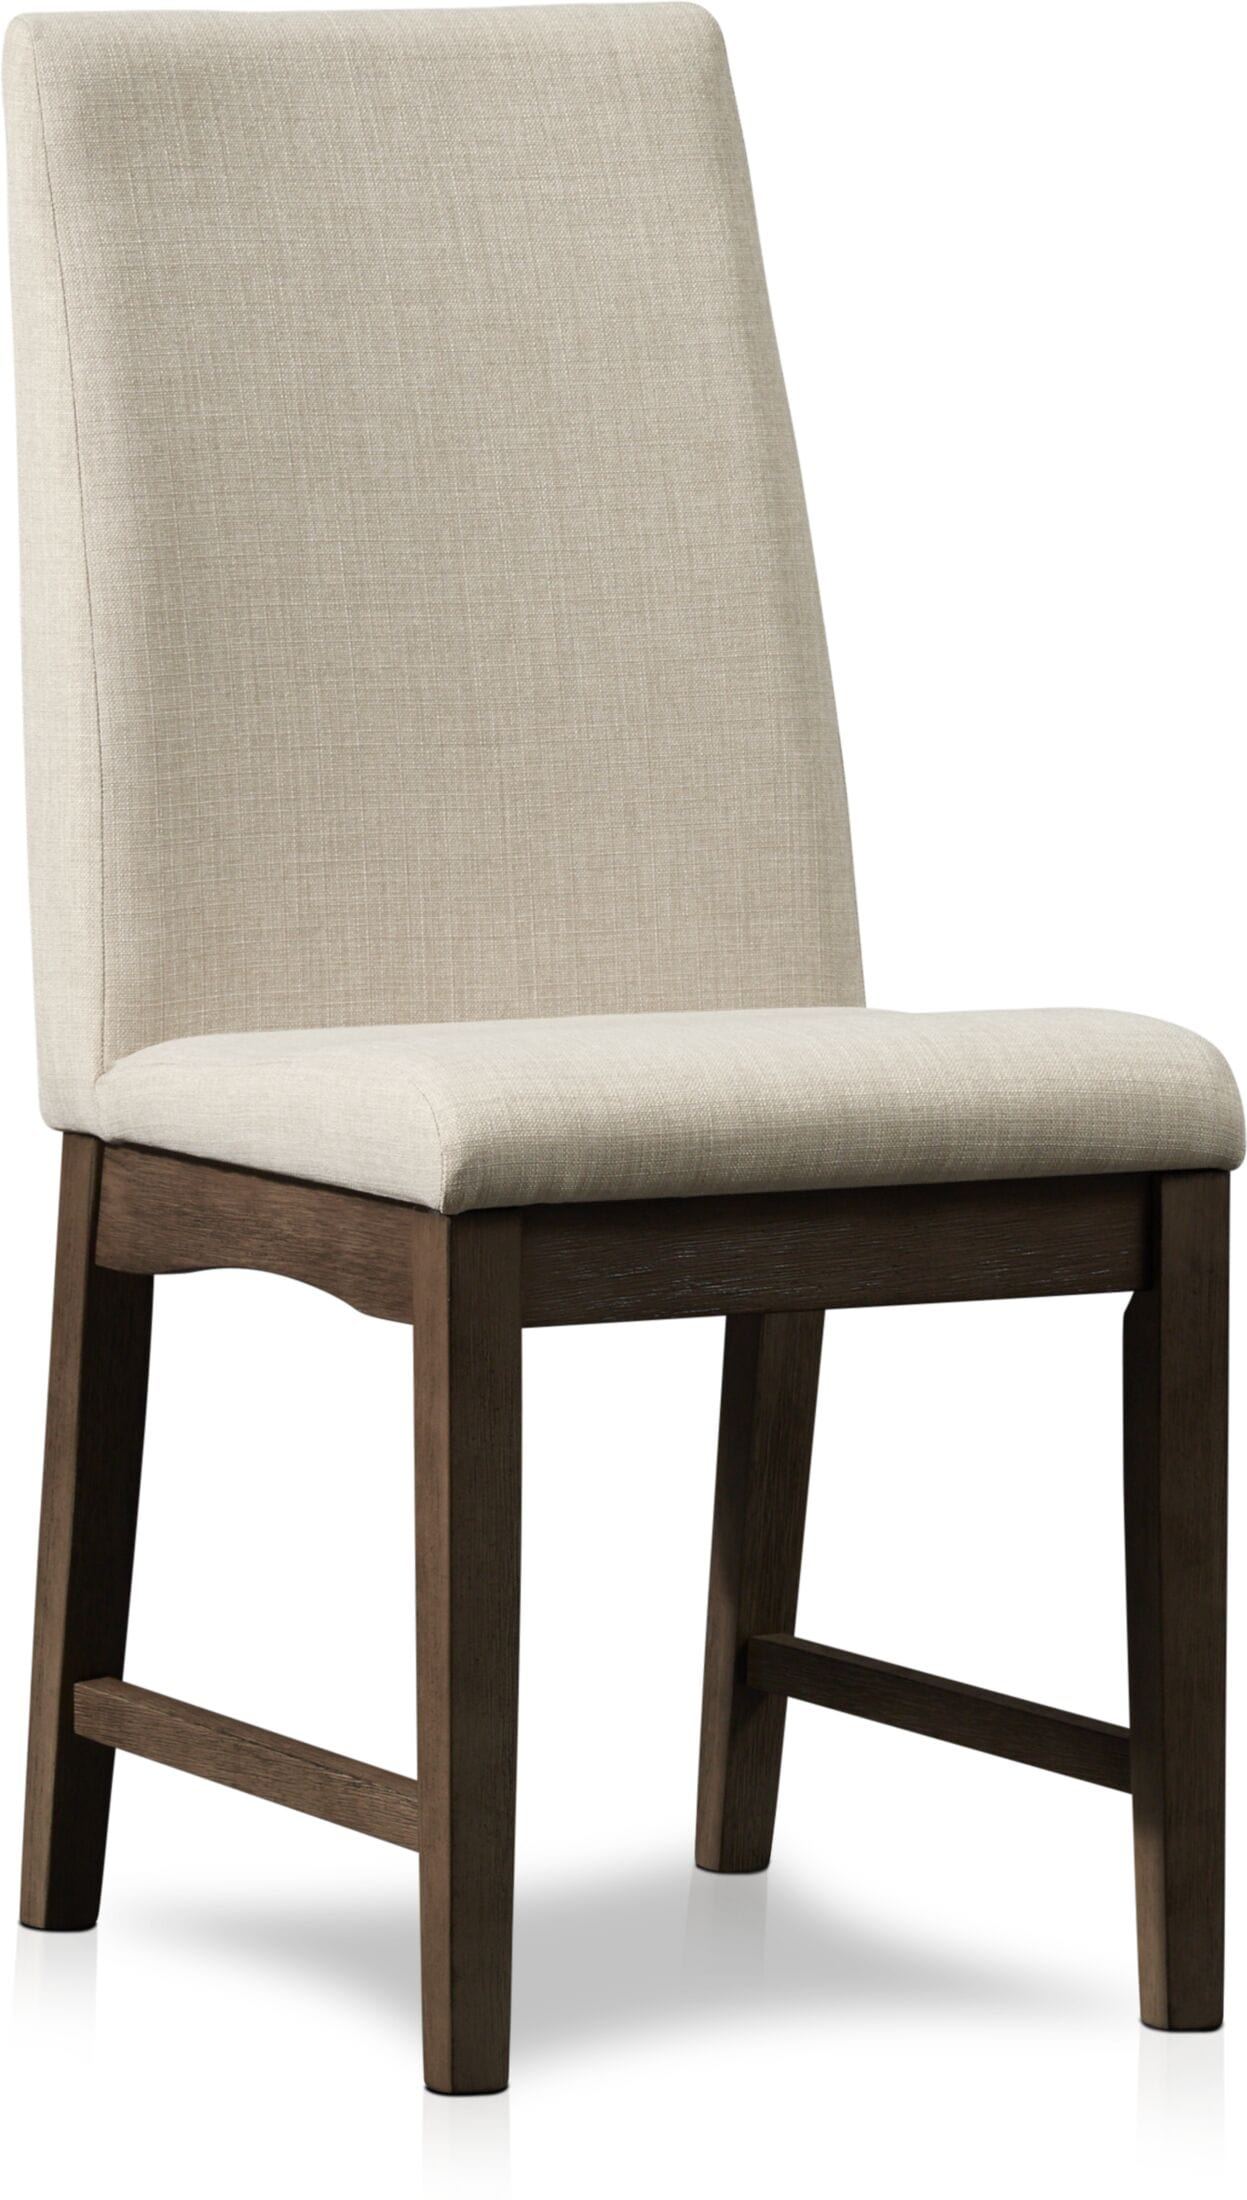 Dining Room Furniture - Gemini Dining Chair